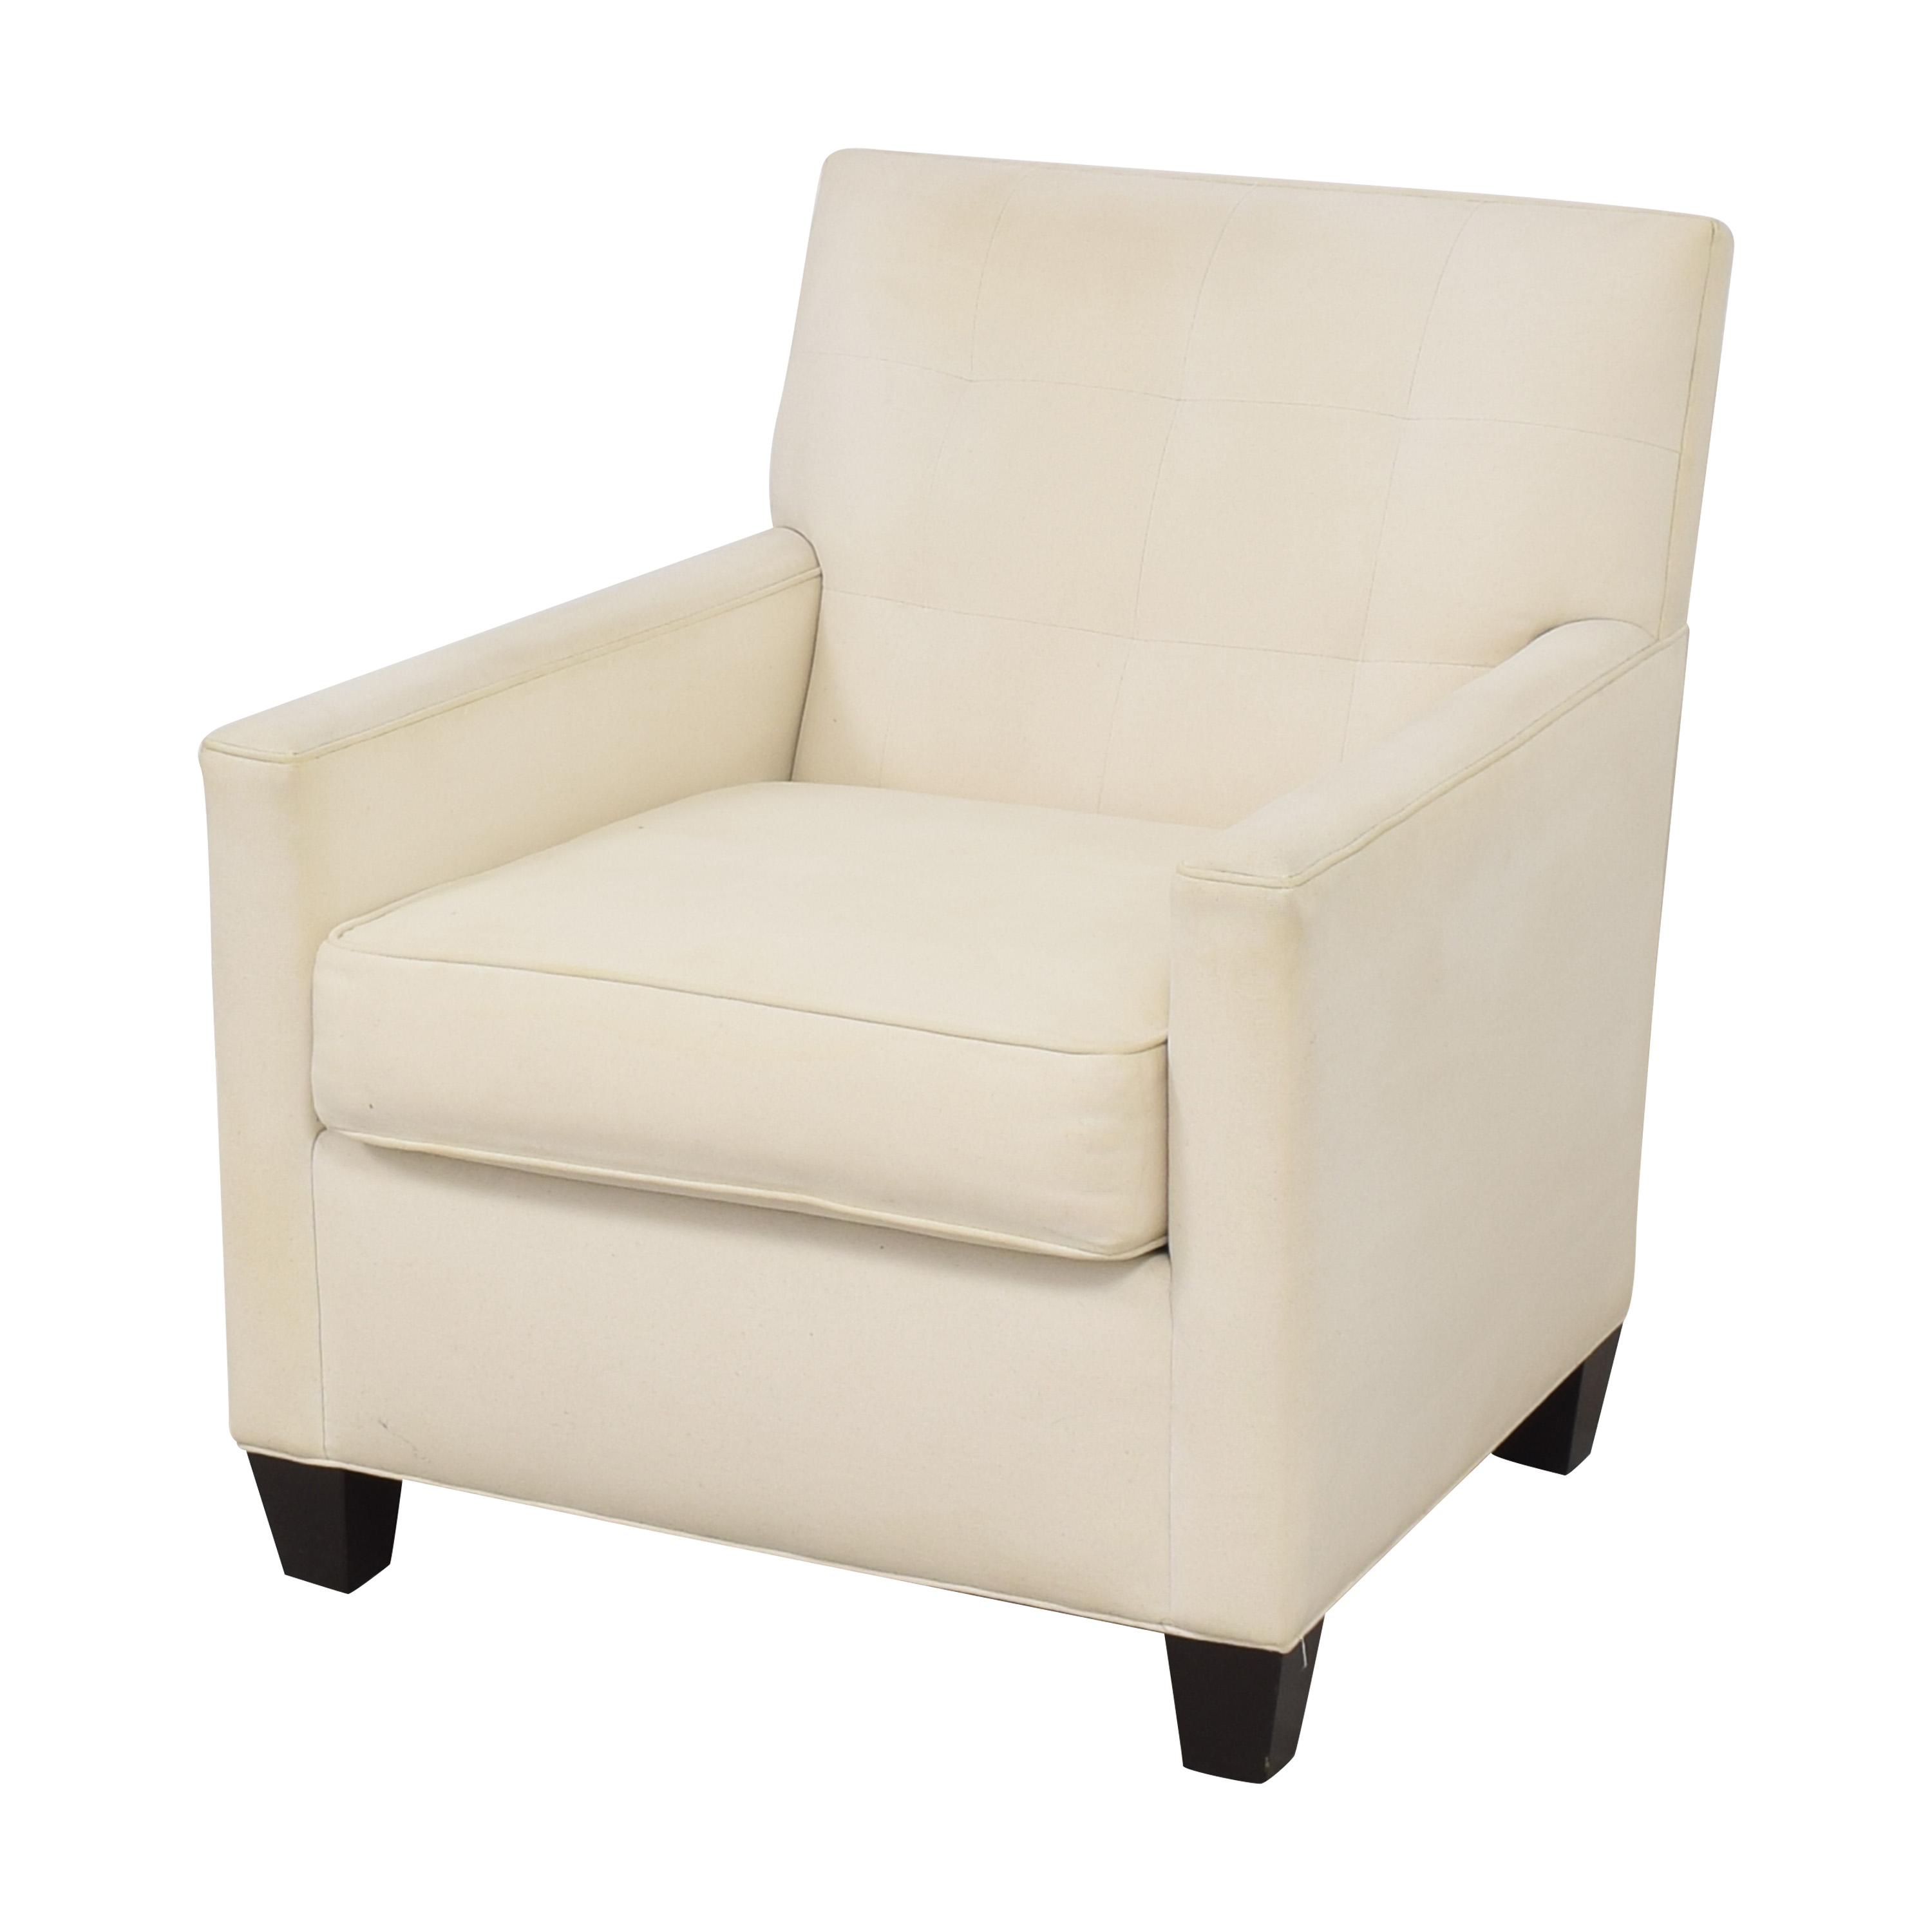 Nathan Anthony Nathan Anthony Lounge Chair nj